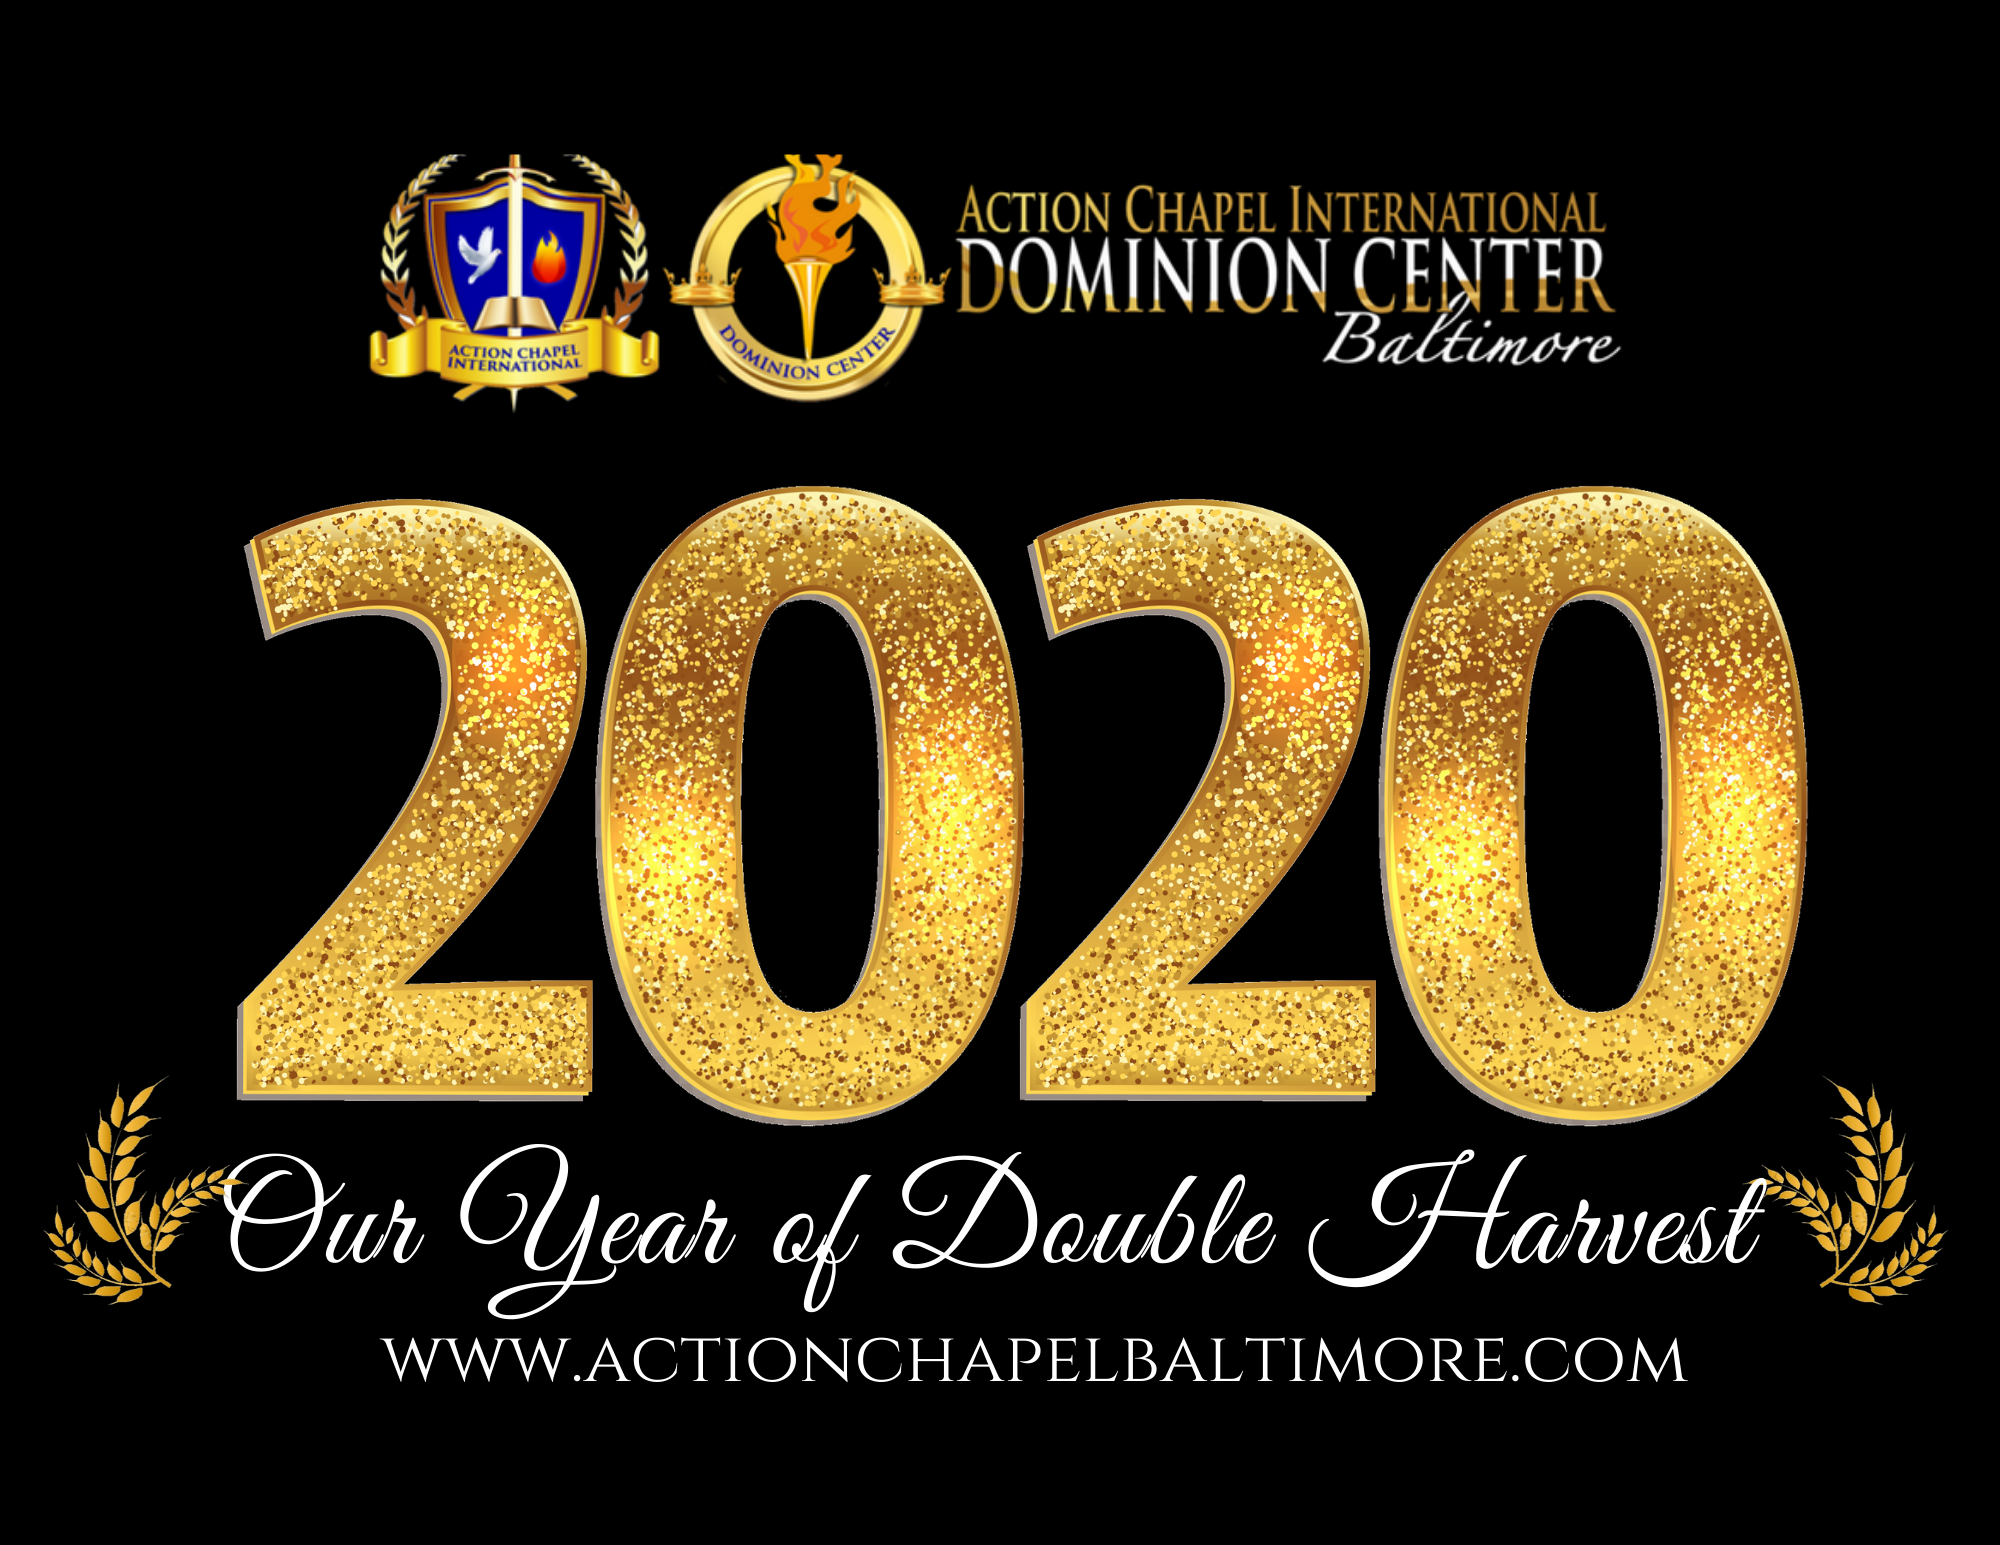 2020 The Year of Double Harvest